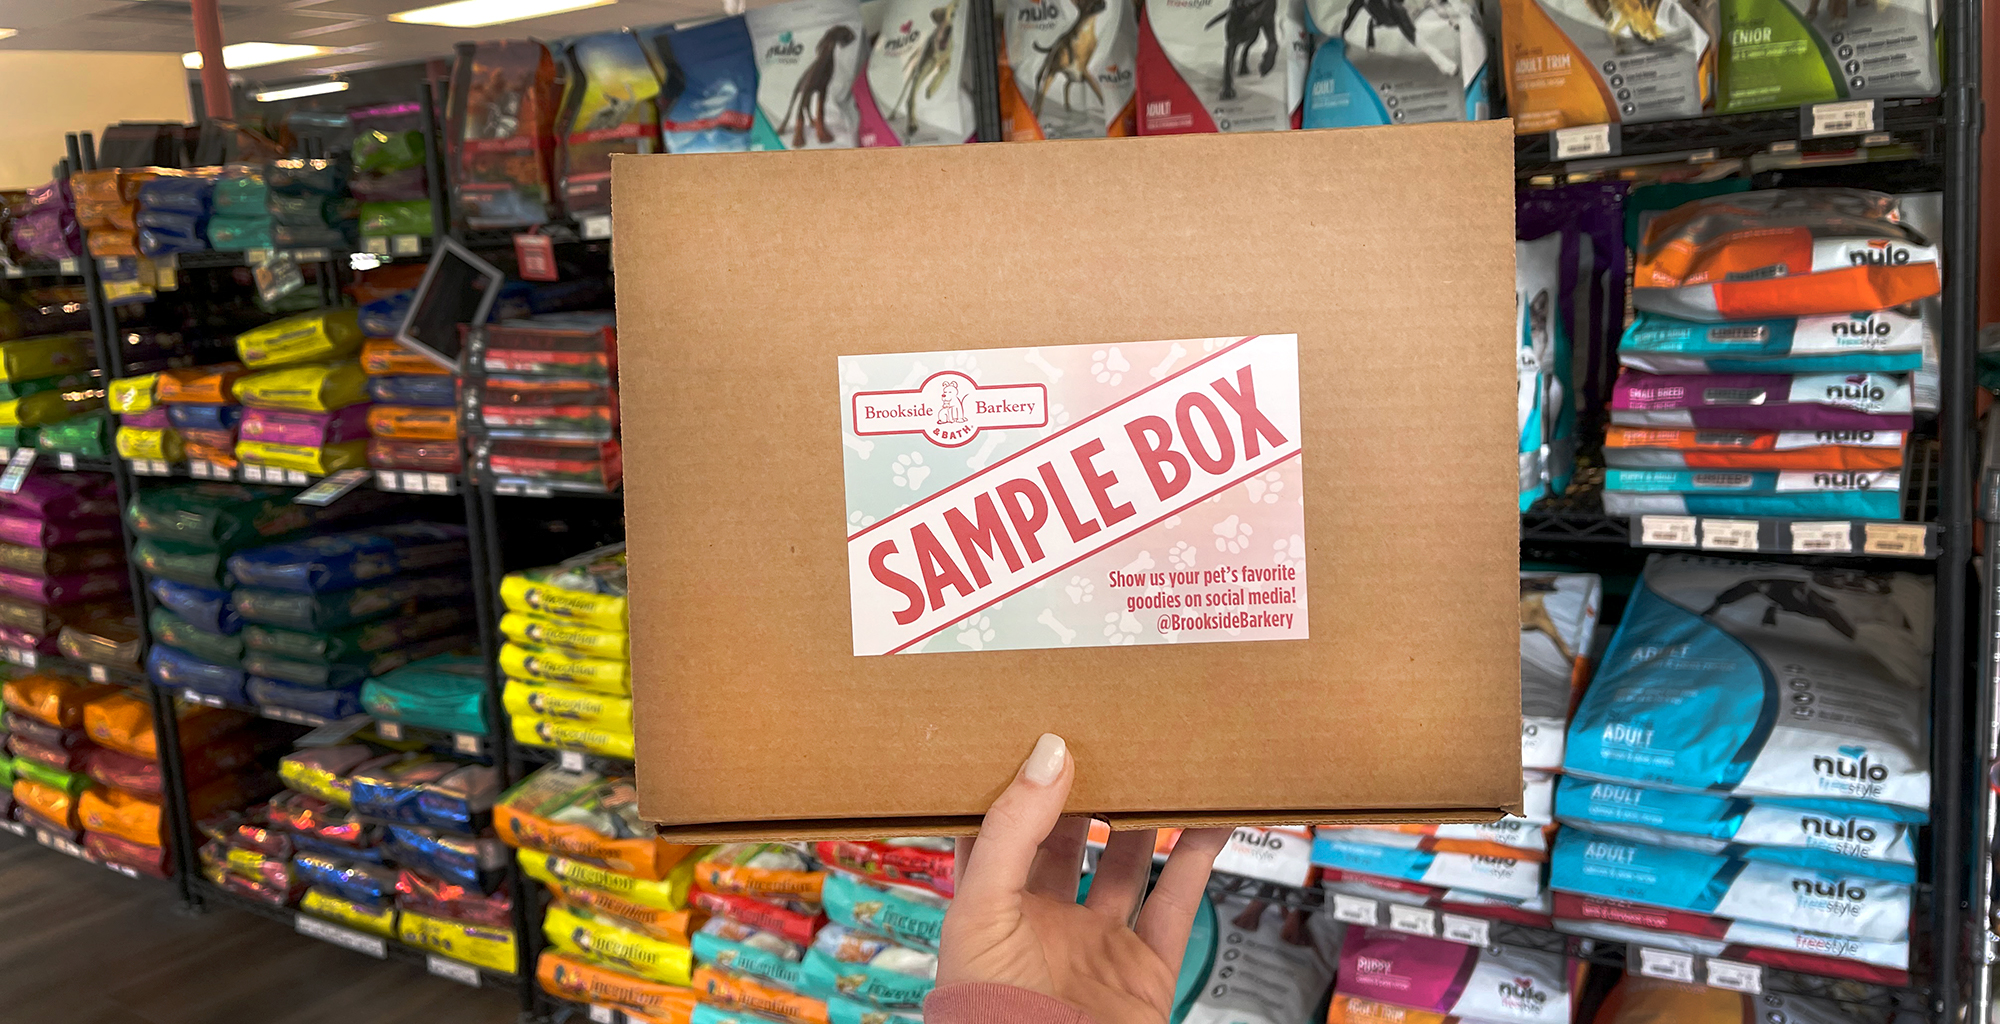 Introducing Barkery Sample Boxes!